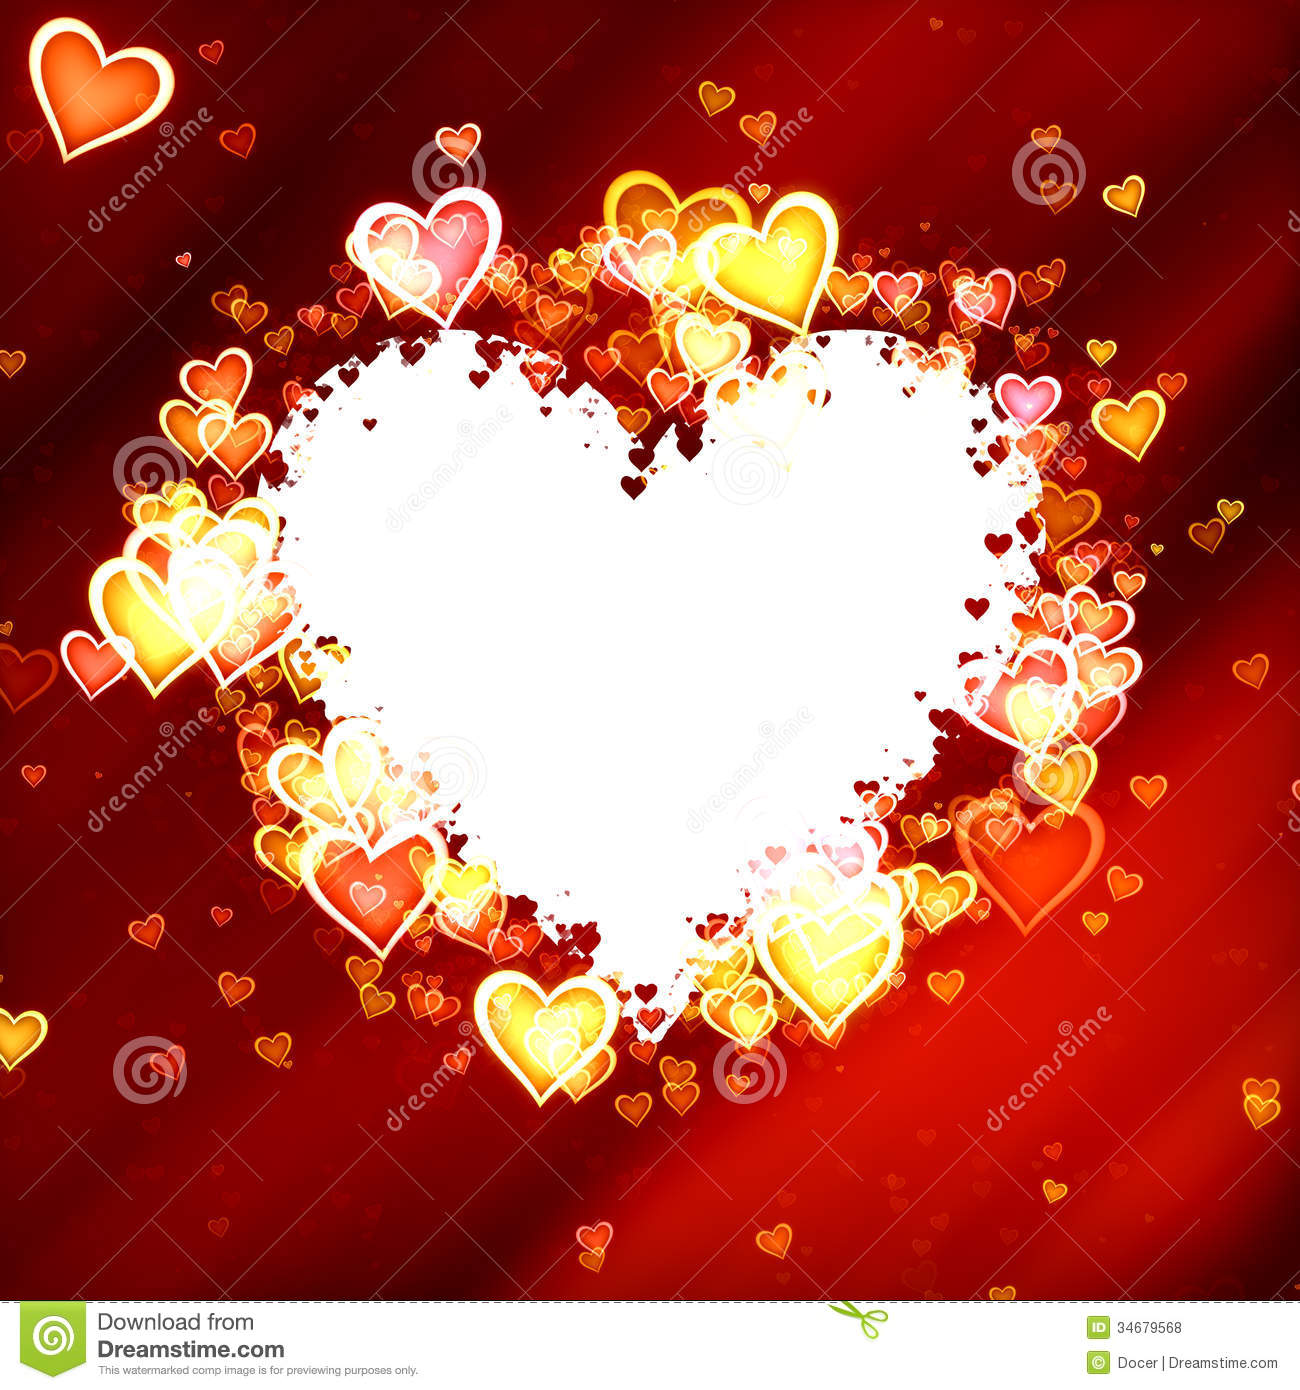 Hearts Frame Of Valentines Day With Clipping Path Love Texture